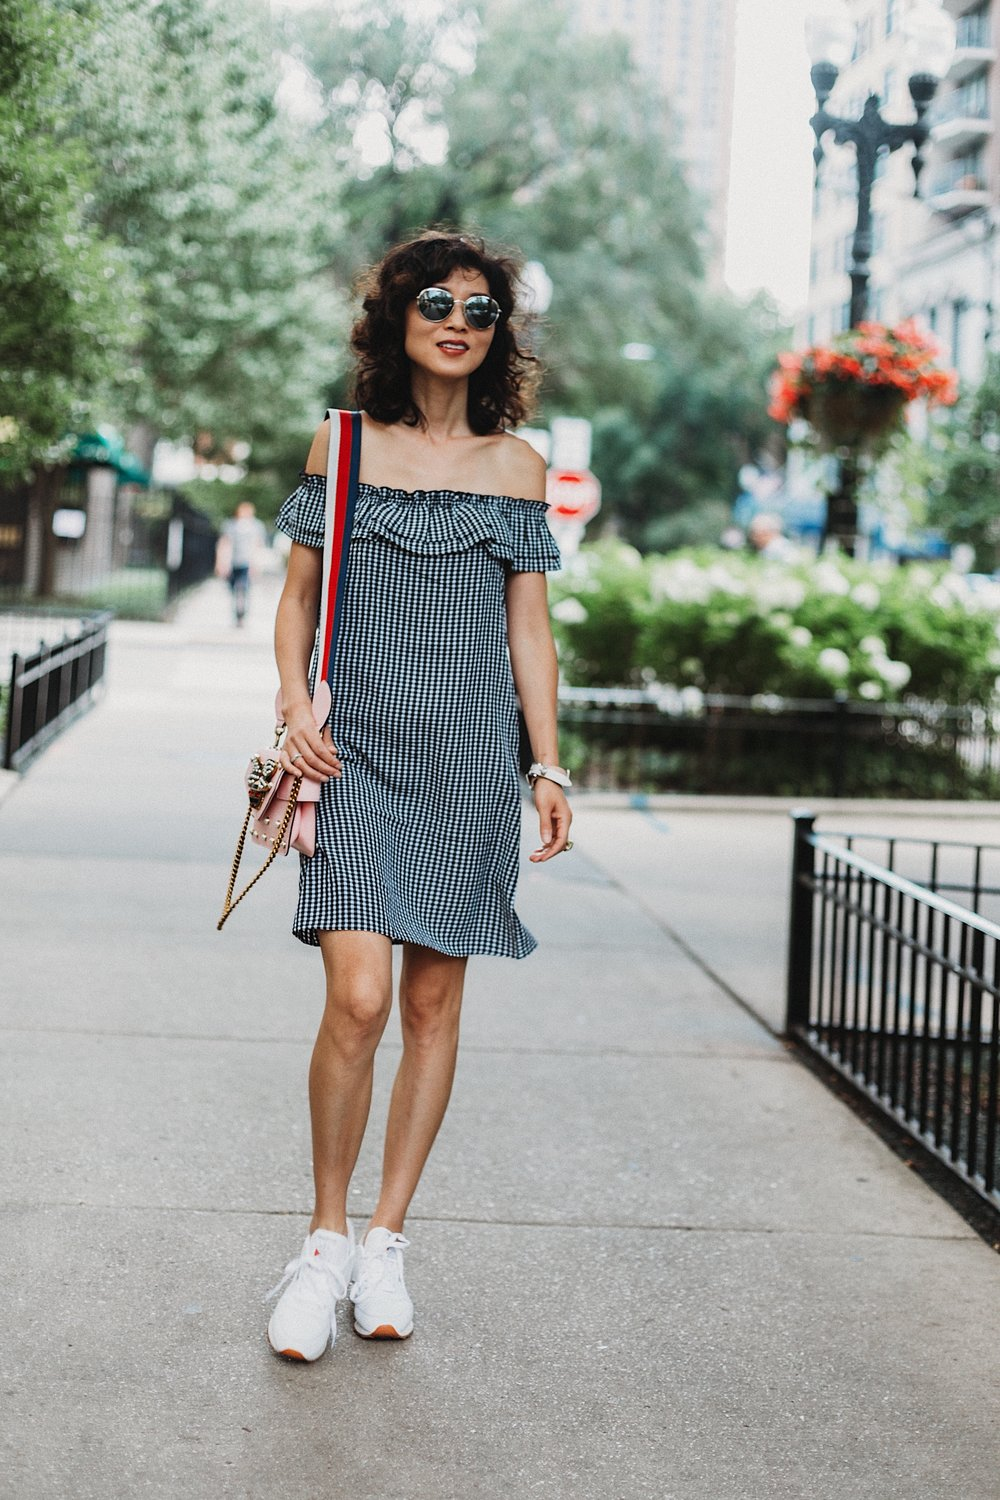 Shop my look and similar items here:// Gingham Dress//Gingham Dress(similar)//Gingham Dress(similar)//Sneaker//Broadway Mini  Purse//Sunnies//Sunnies( steal) //Bracelet//